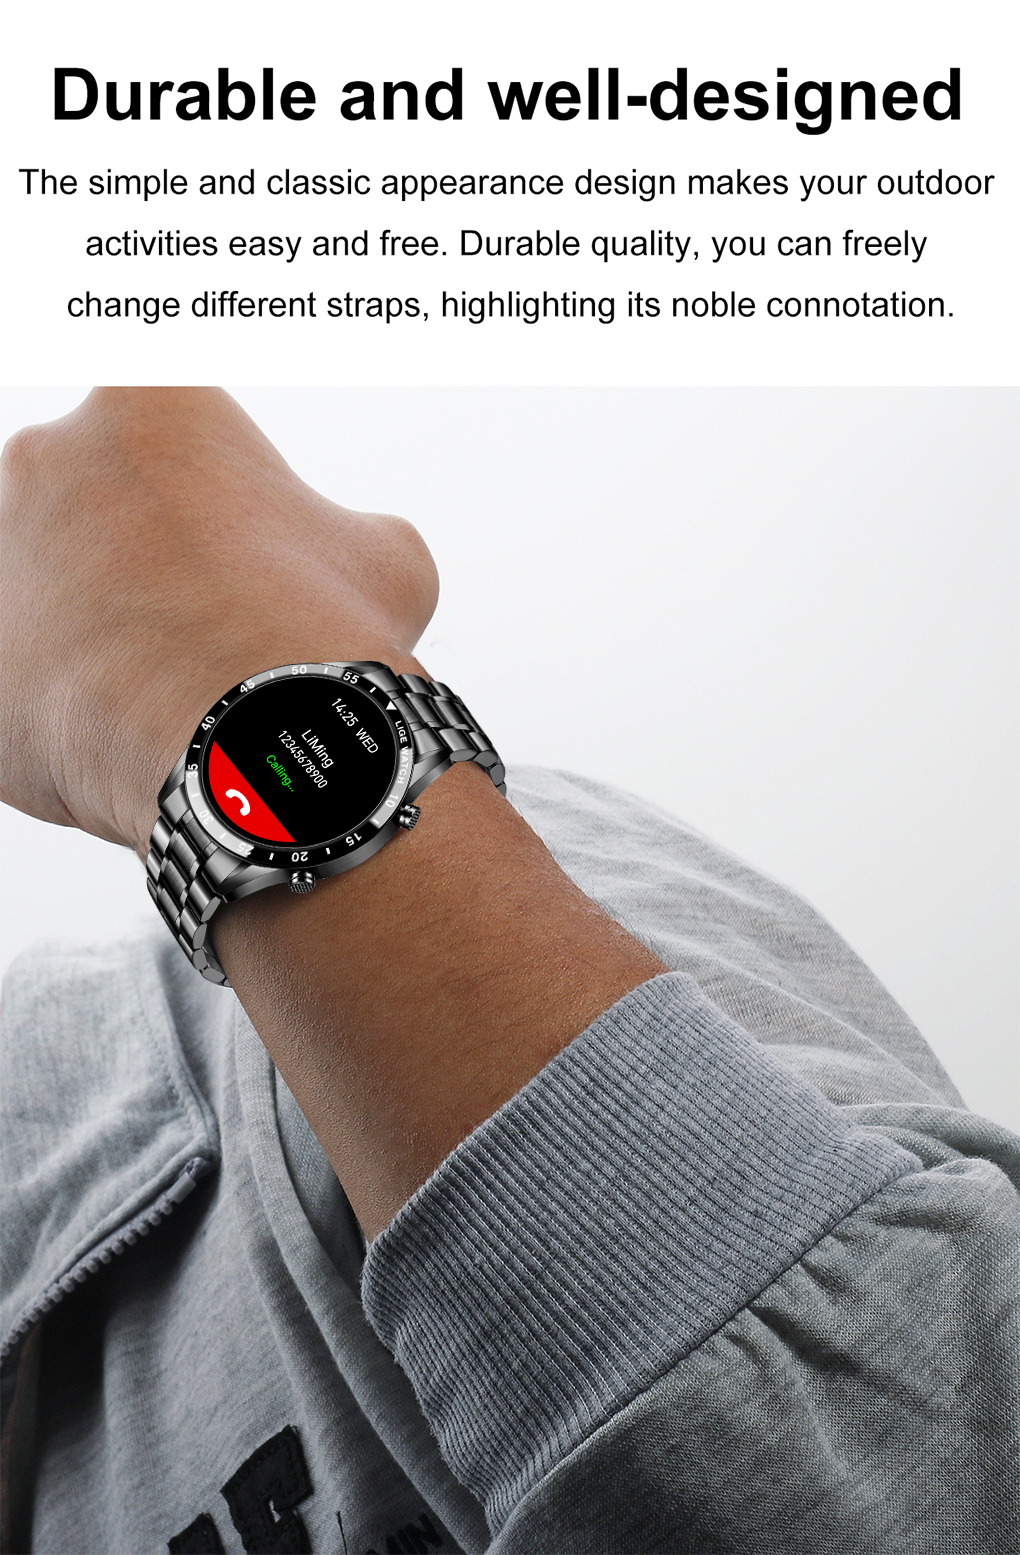 H52a90999bcd84206bd39eb4dcdd40f095 LIGE 2021 New Smart Watch Men Full Touch Screen Sports Fitness Watch Waterproof Bluetooth Call For Android iOS Smartwatch Mens